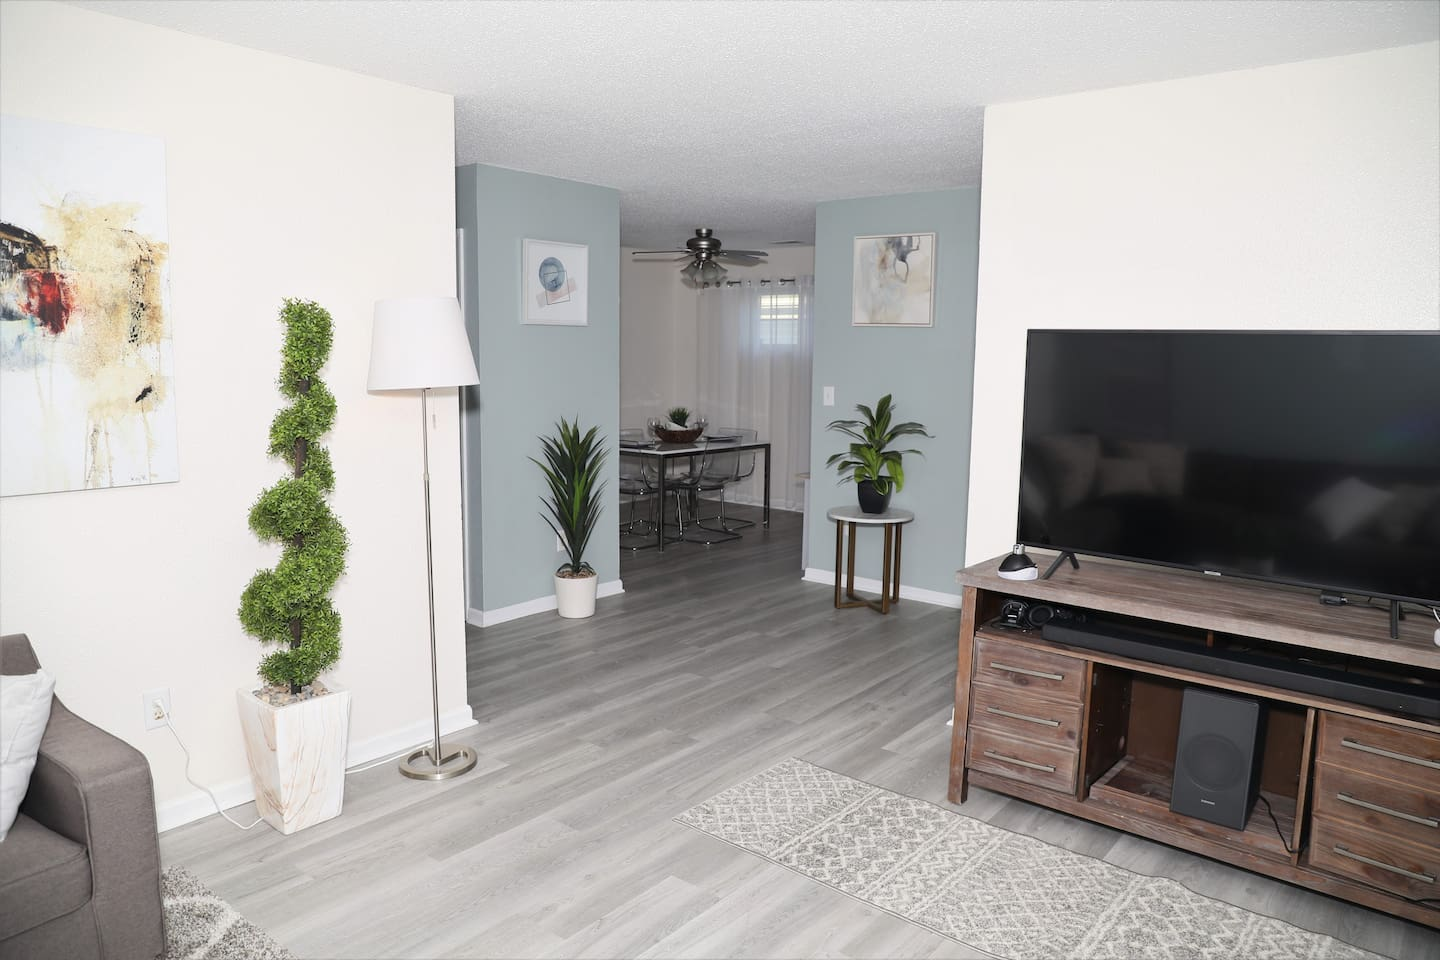 The spacious living room is very comfy and has a large smart TV with high-speed internet